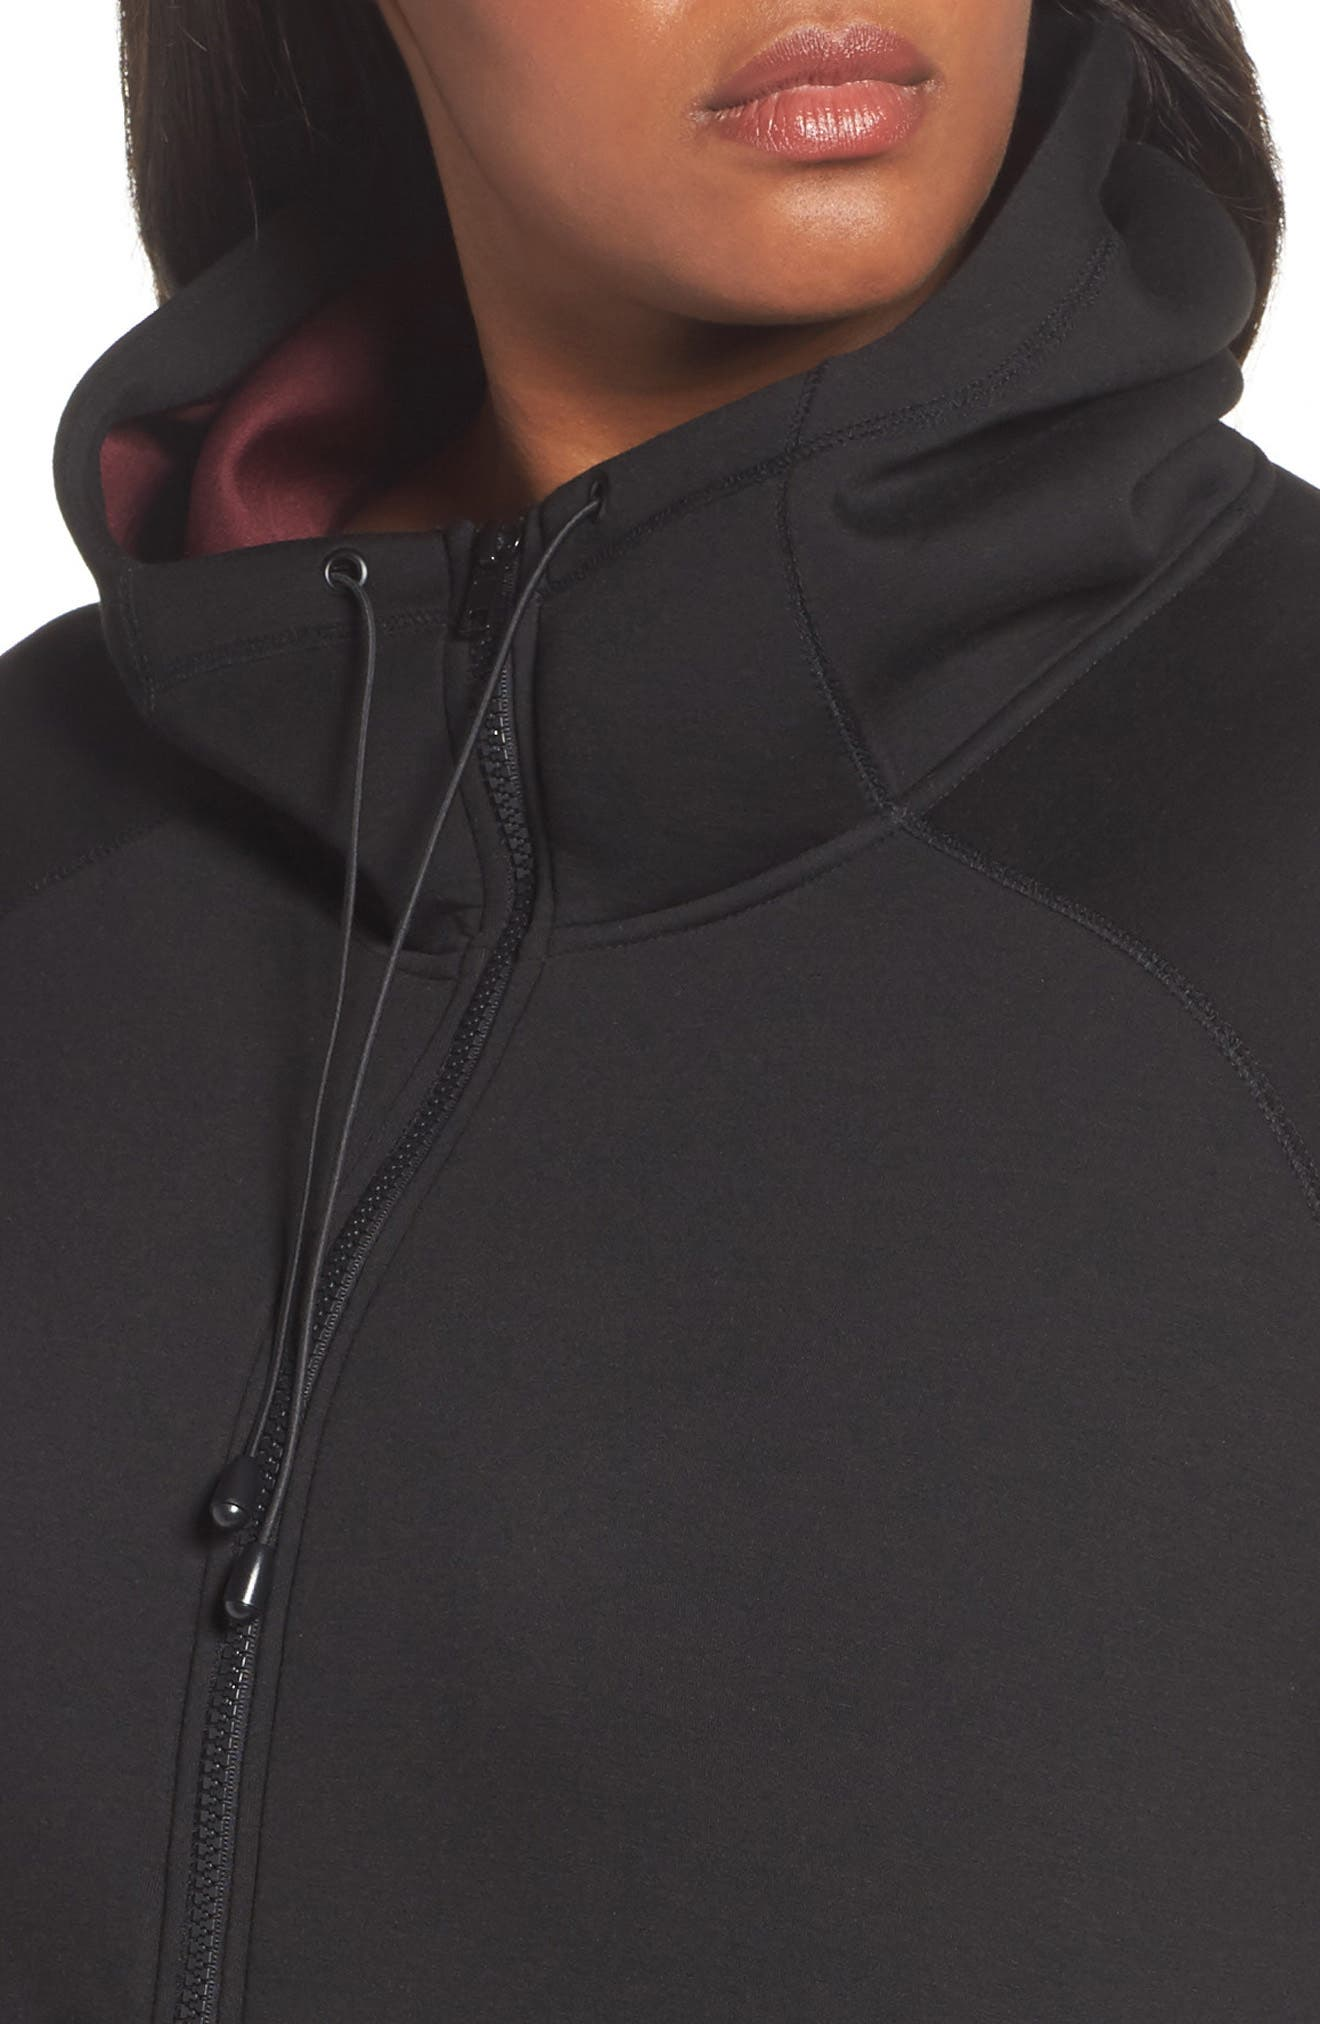 Mono Knit Drawstring Hooded Jacket,                             Alternate thumbnail 4, color,                             Black/ Burgundy